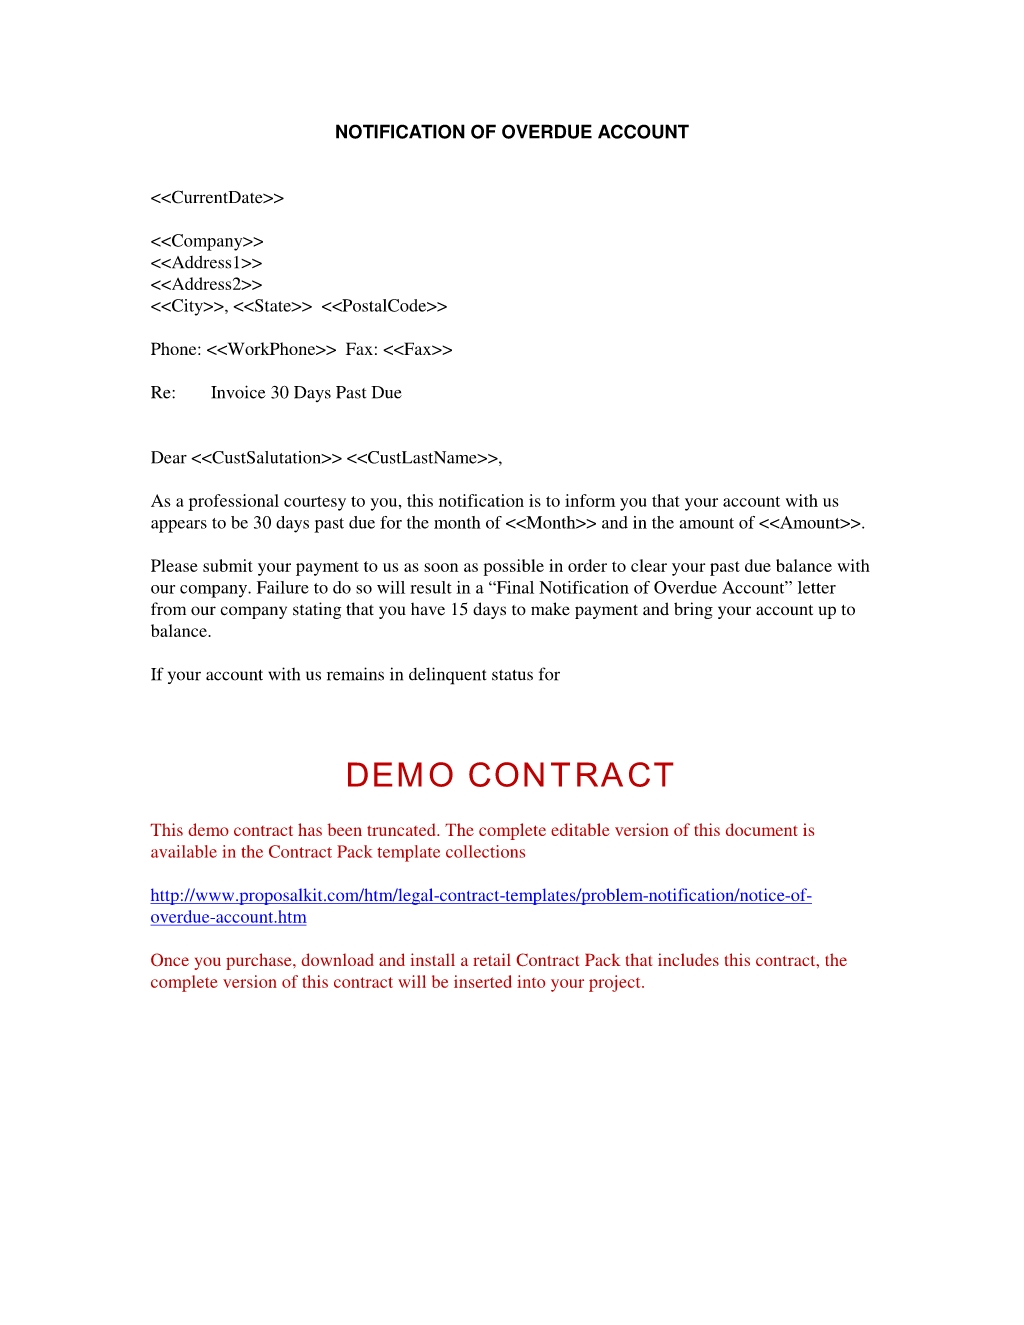 notice of overdue account notification of problem documents sample letter for past due invoices